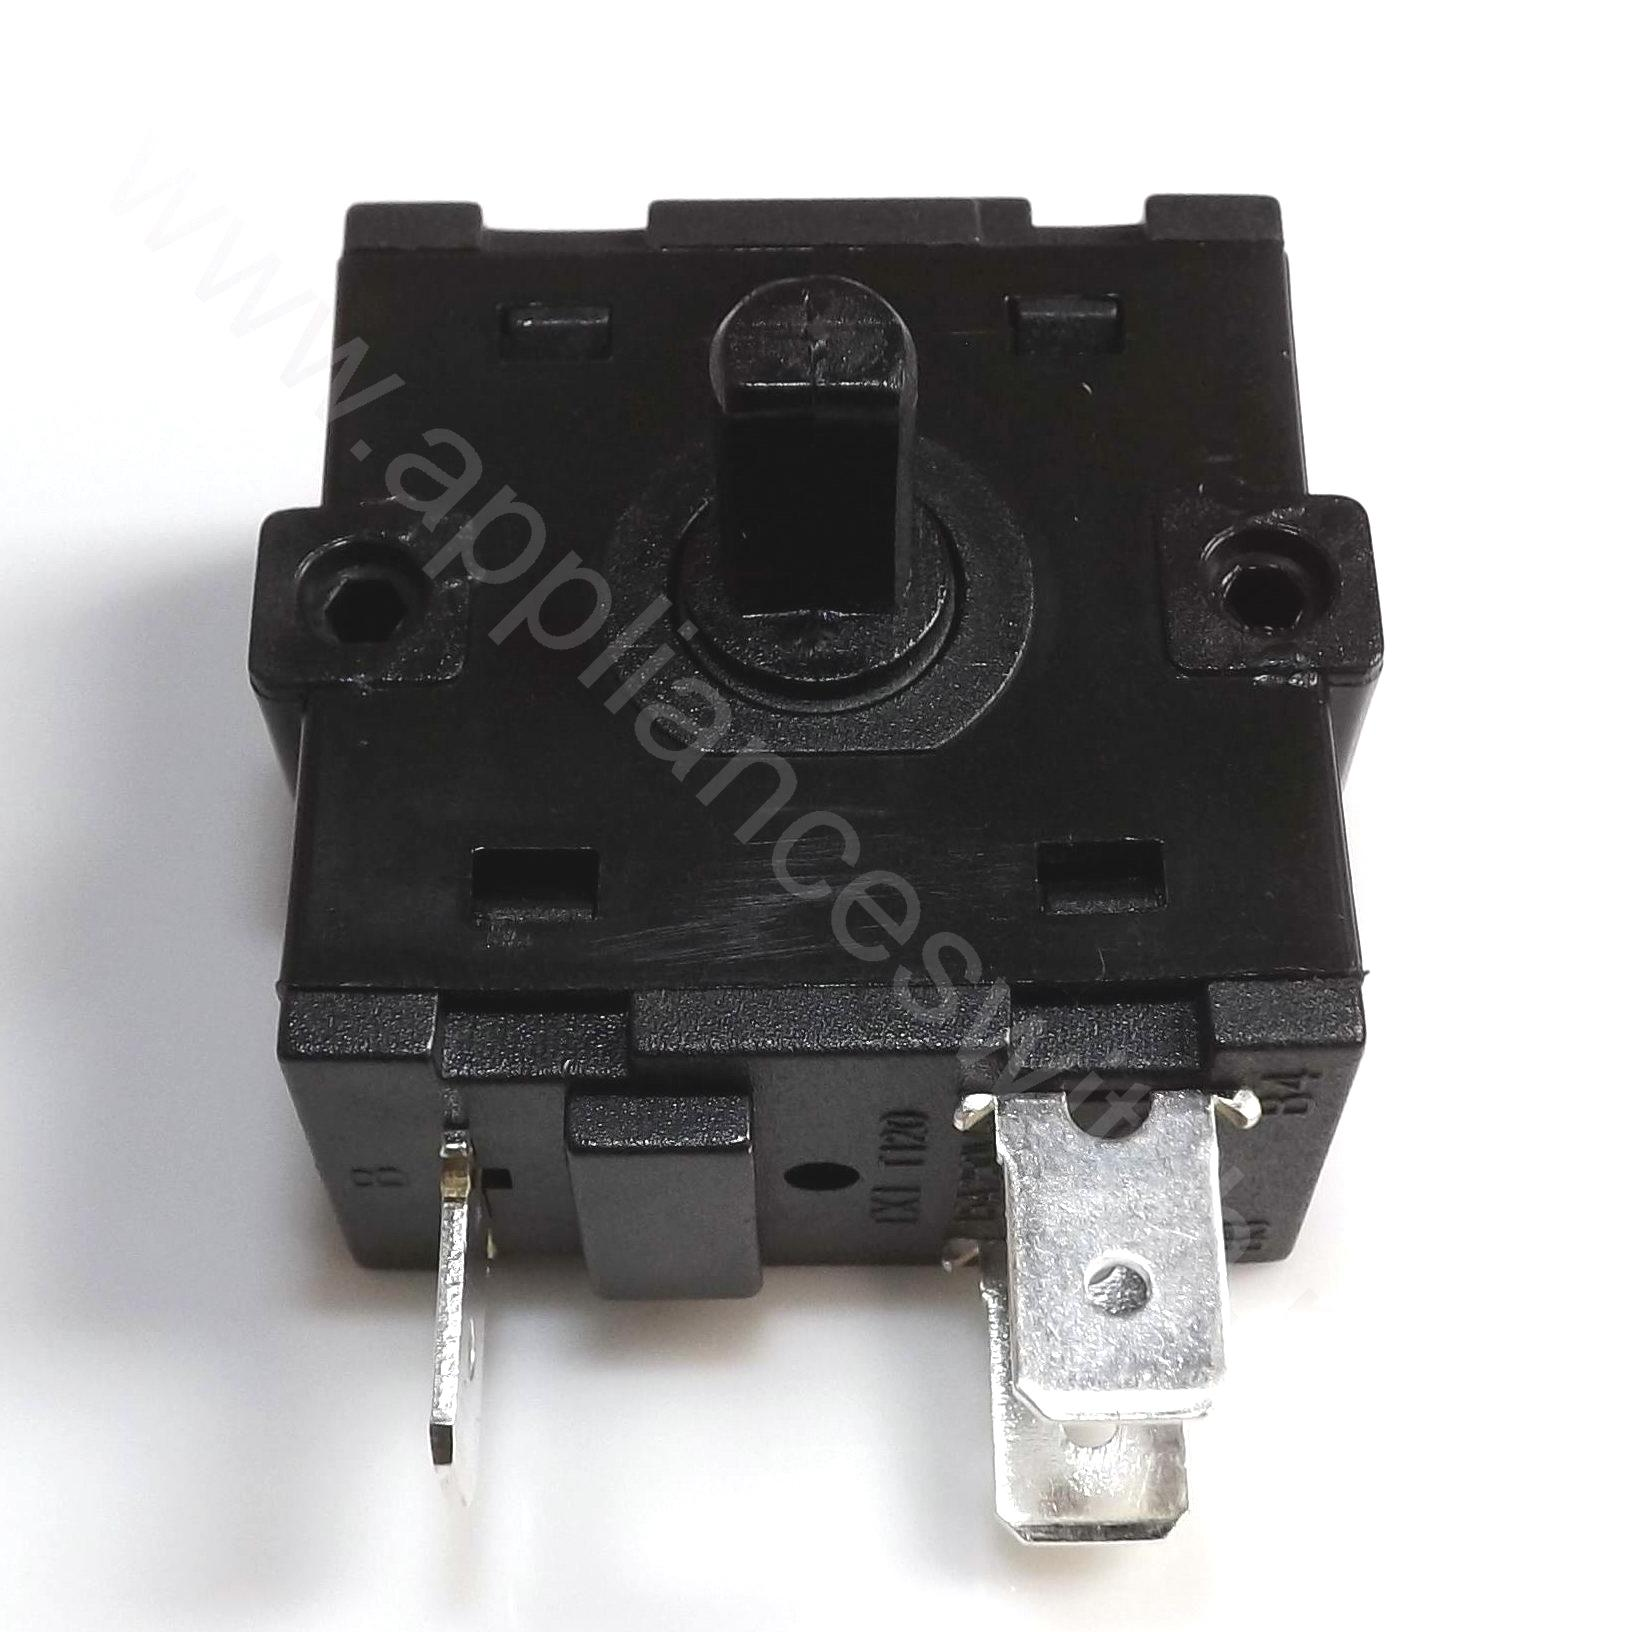 Single pole/double pole multiple throw Rotary switch for fan heater ...